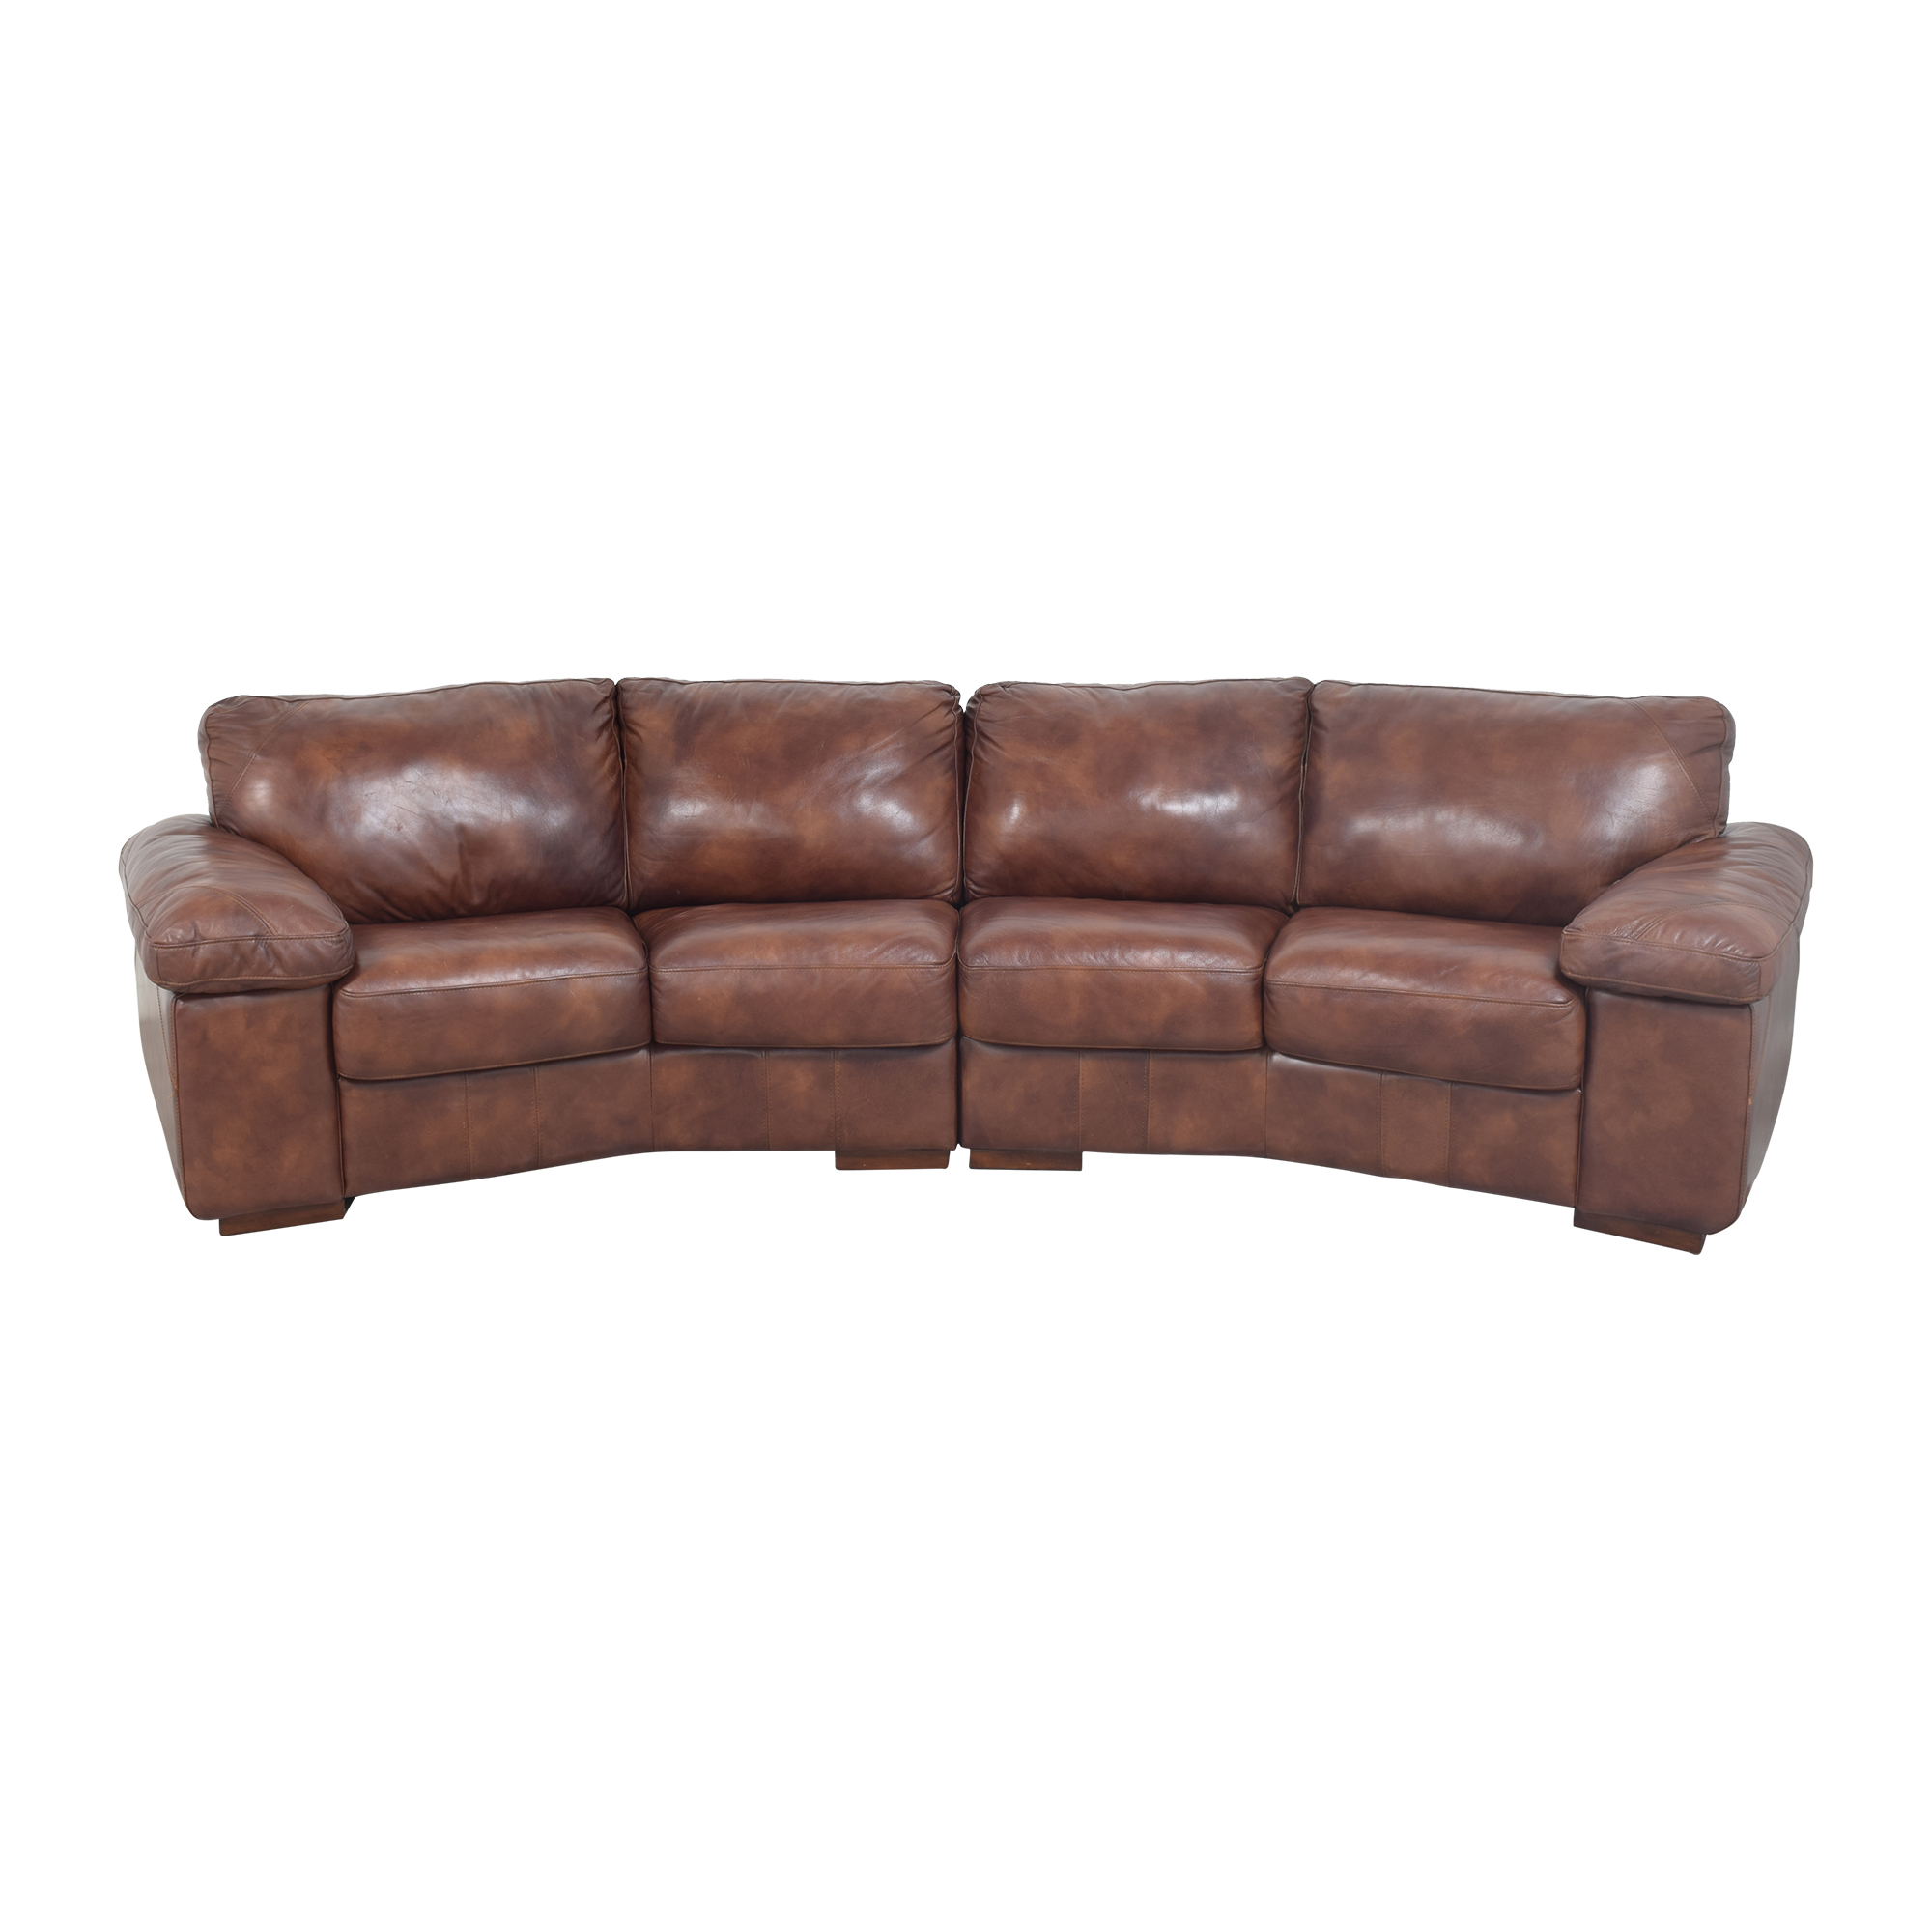 Bassett Furniture Bassett Two Piece Sectional Sofa with Ottomans dimensions